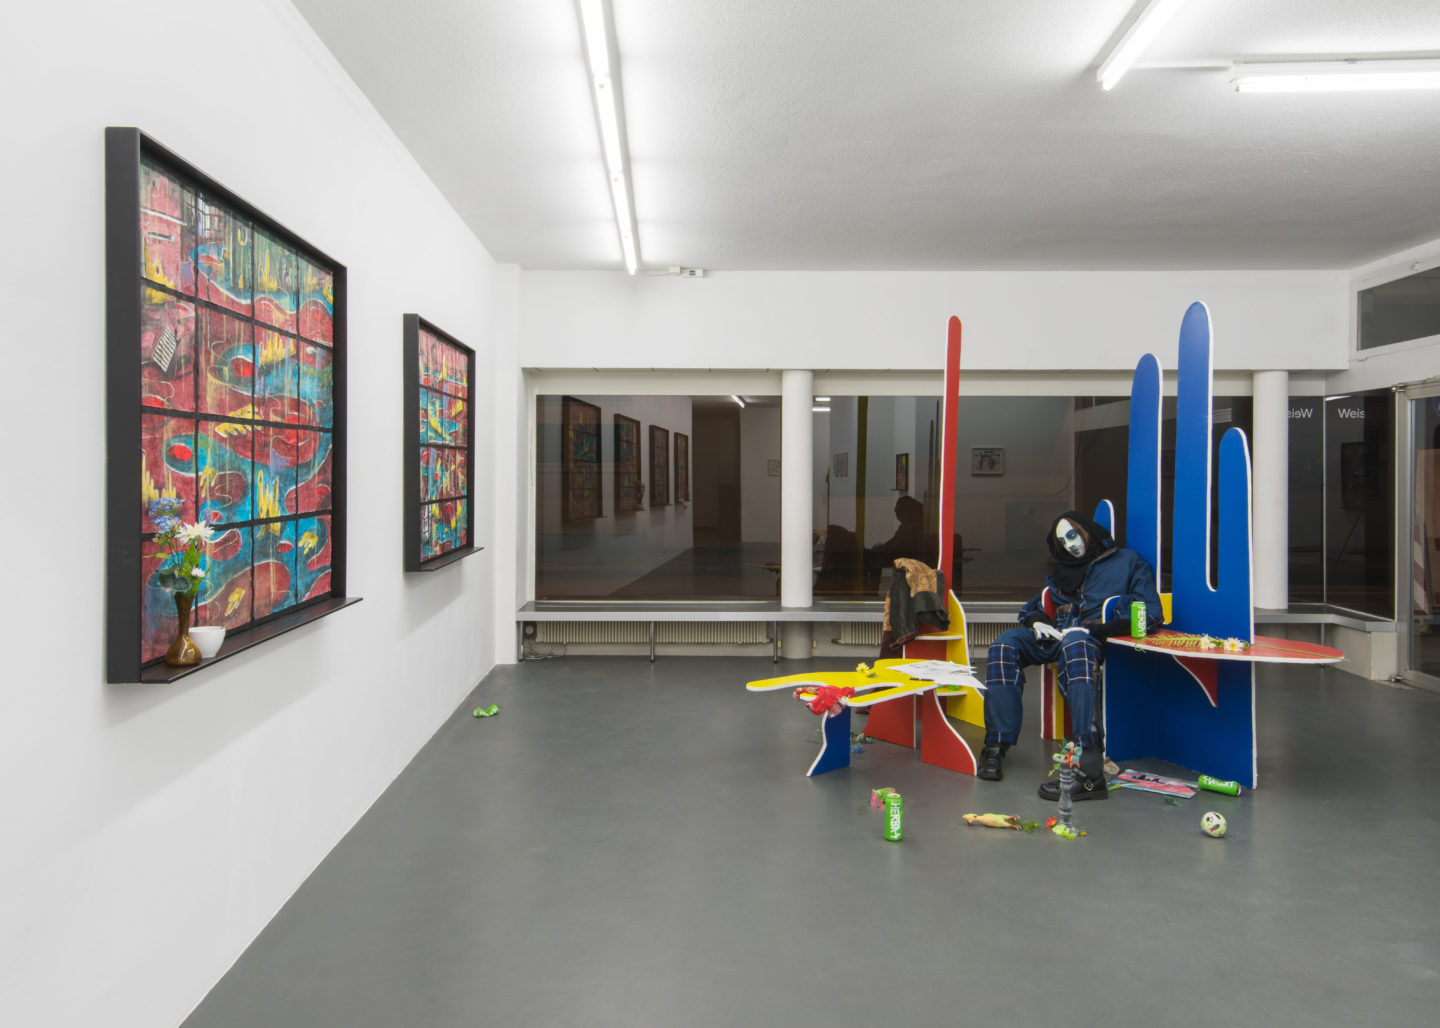 "Exhibition View Veit Laurent Kurz ""Aspects of Arriving"" at Weiss Falk / Courtesy: Weiss Falk and the artist"